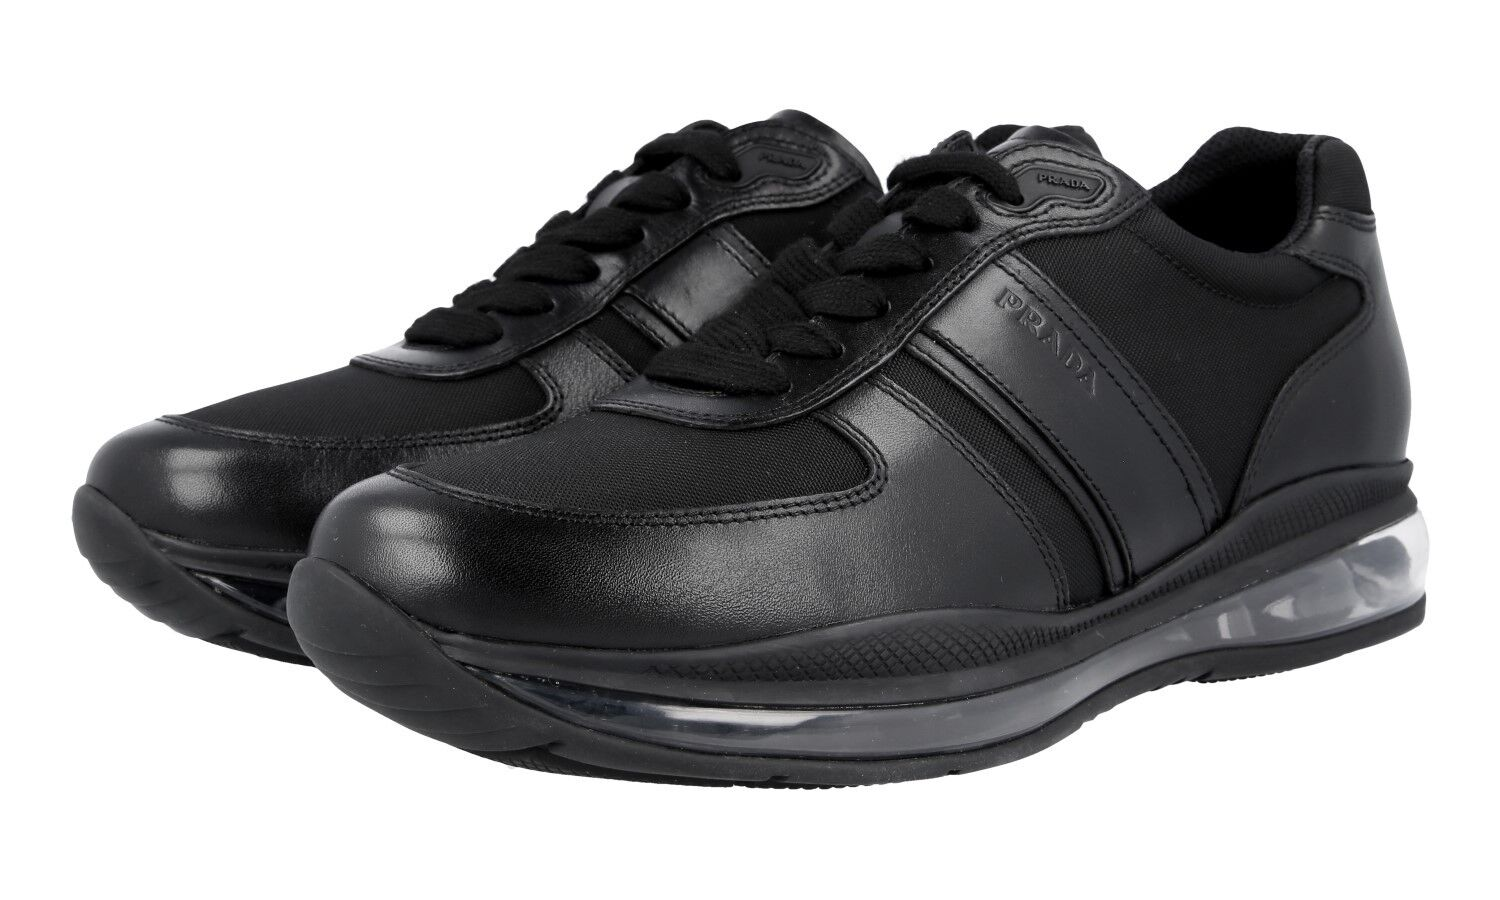 LUXUS PRADA SNEAKER AIR Zapatos 4E2858 Negro MIT AIR SNEAKER SOHLE NEU NEW 8 42 42,5 84c6d7